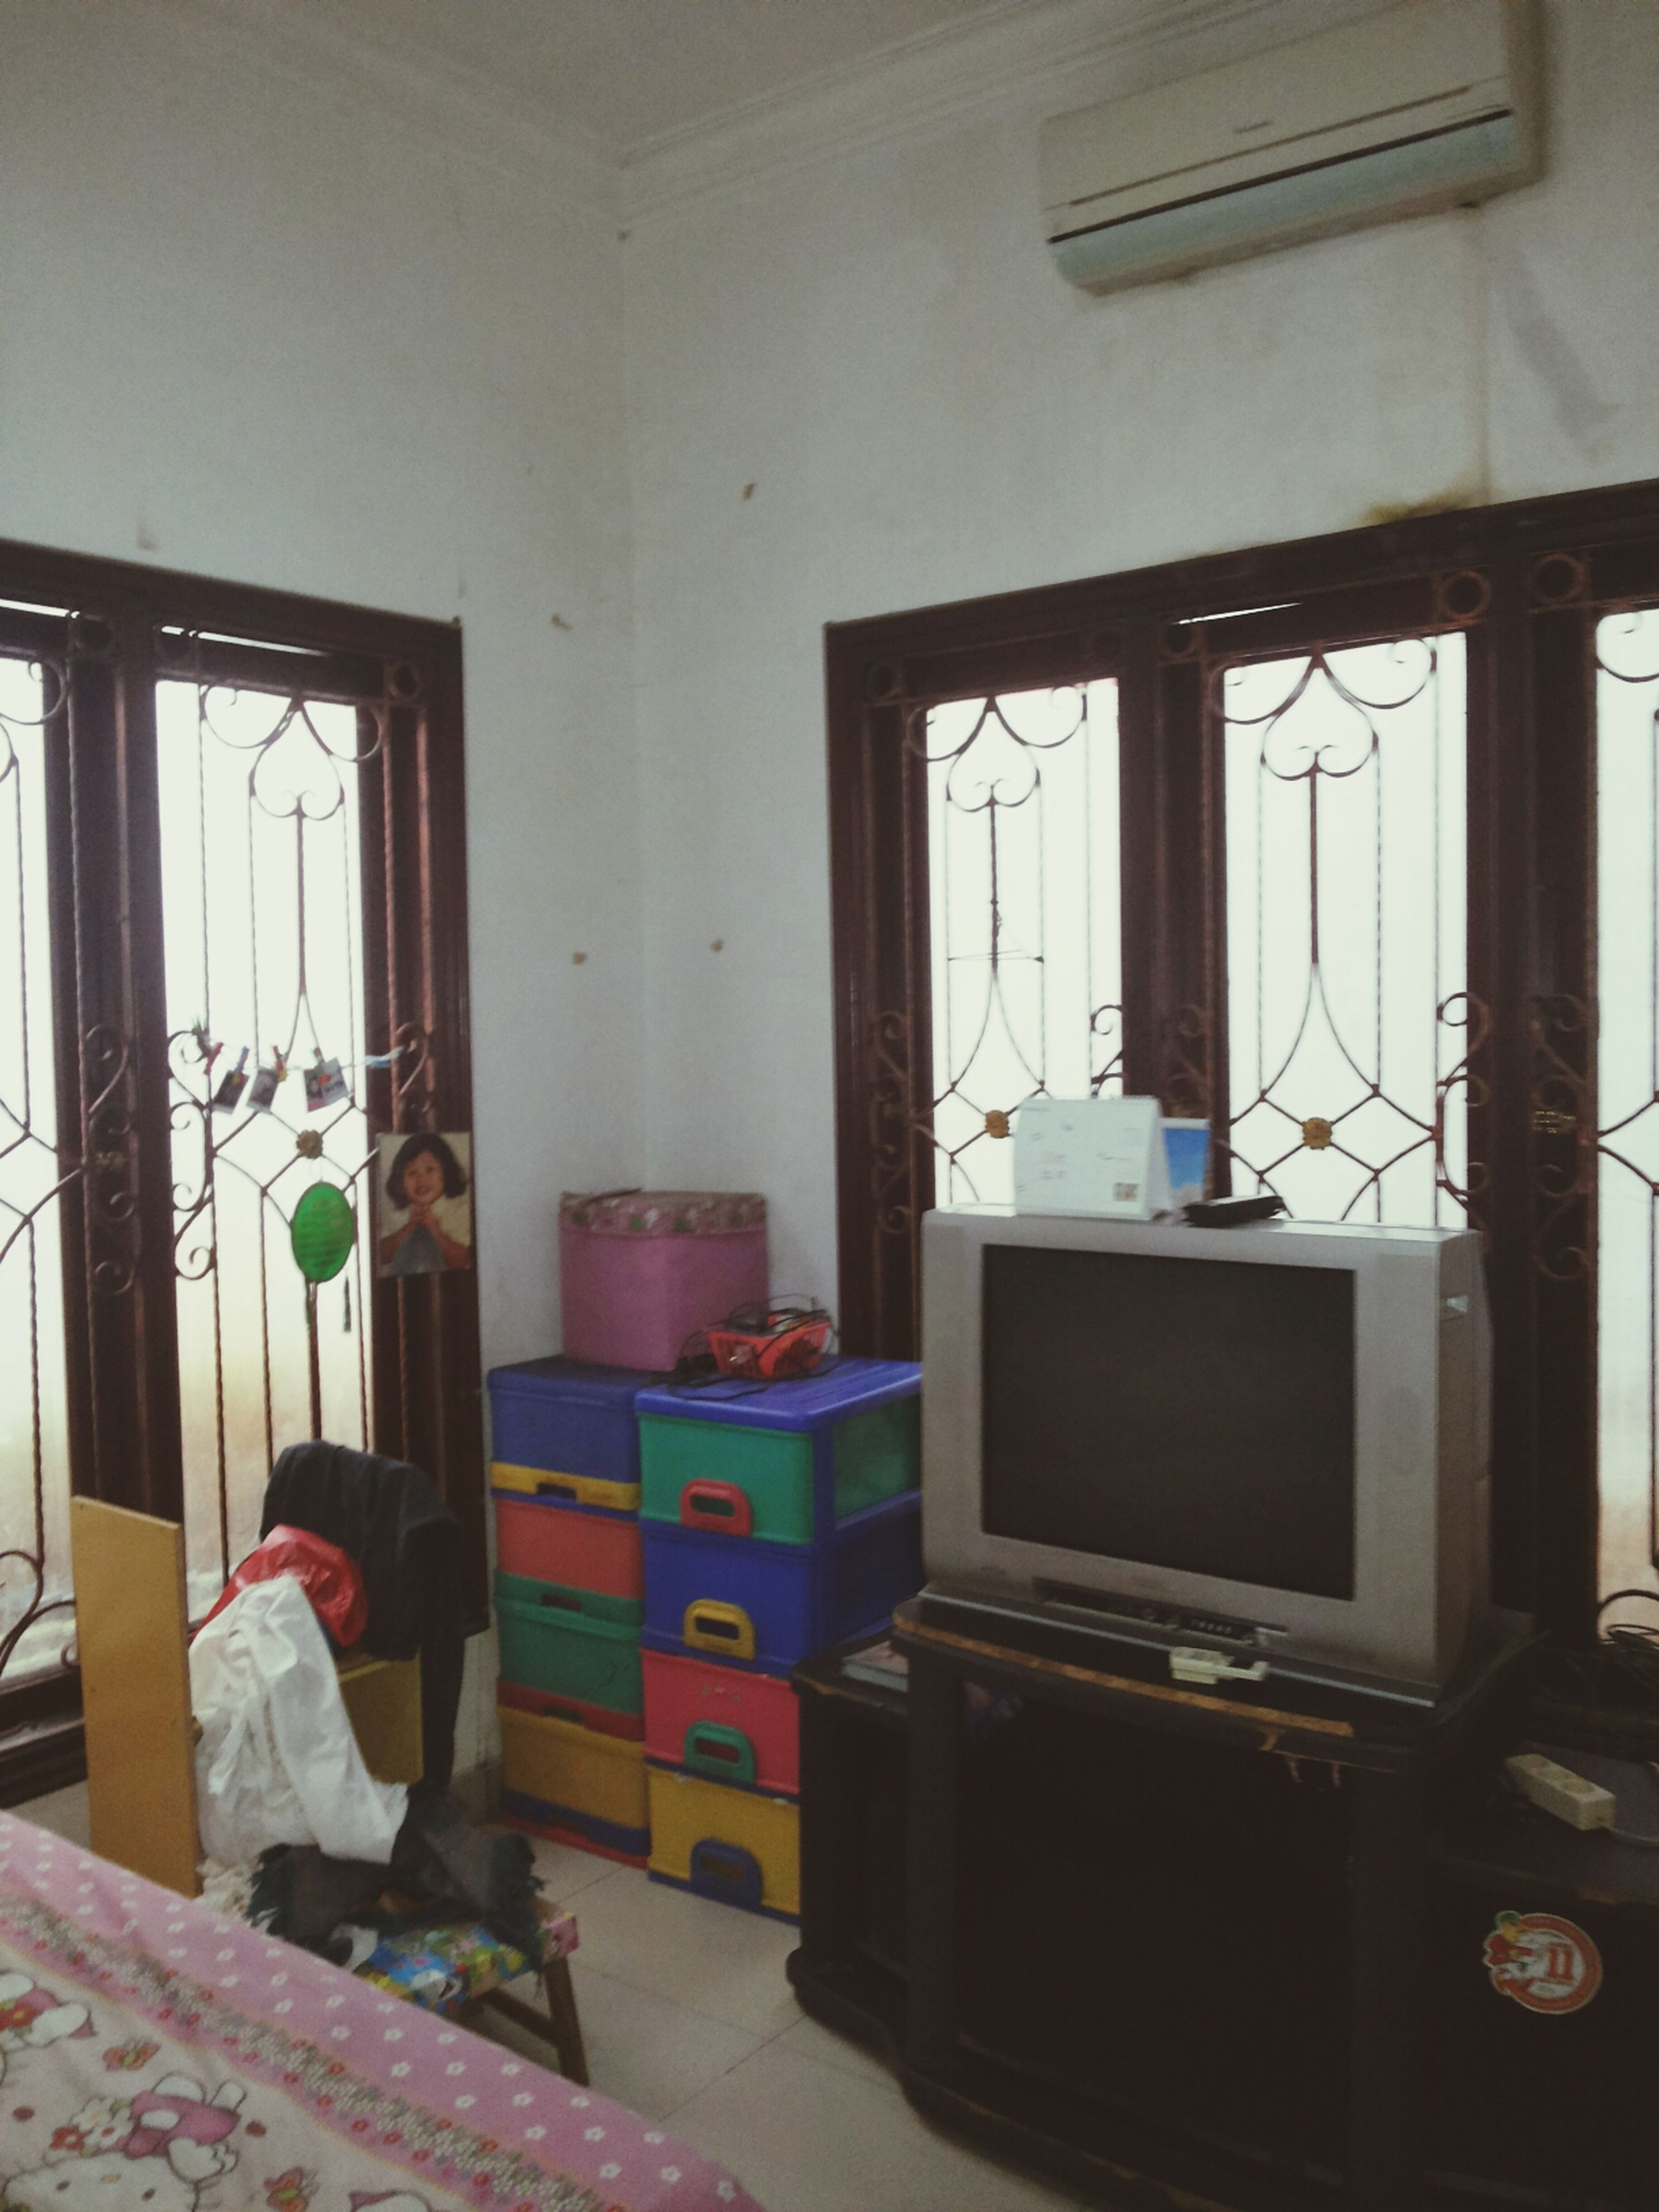 indoors, absence, home interior, chair, interior, empty, table, domestic room, window, room, house, furniture, abandoned, bed, no people, old, open, built structure, architecture, home showcase interior